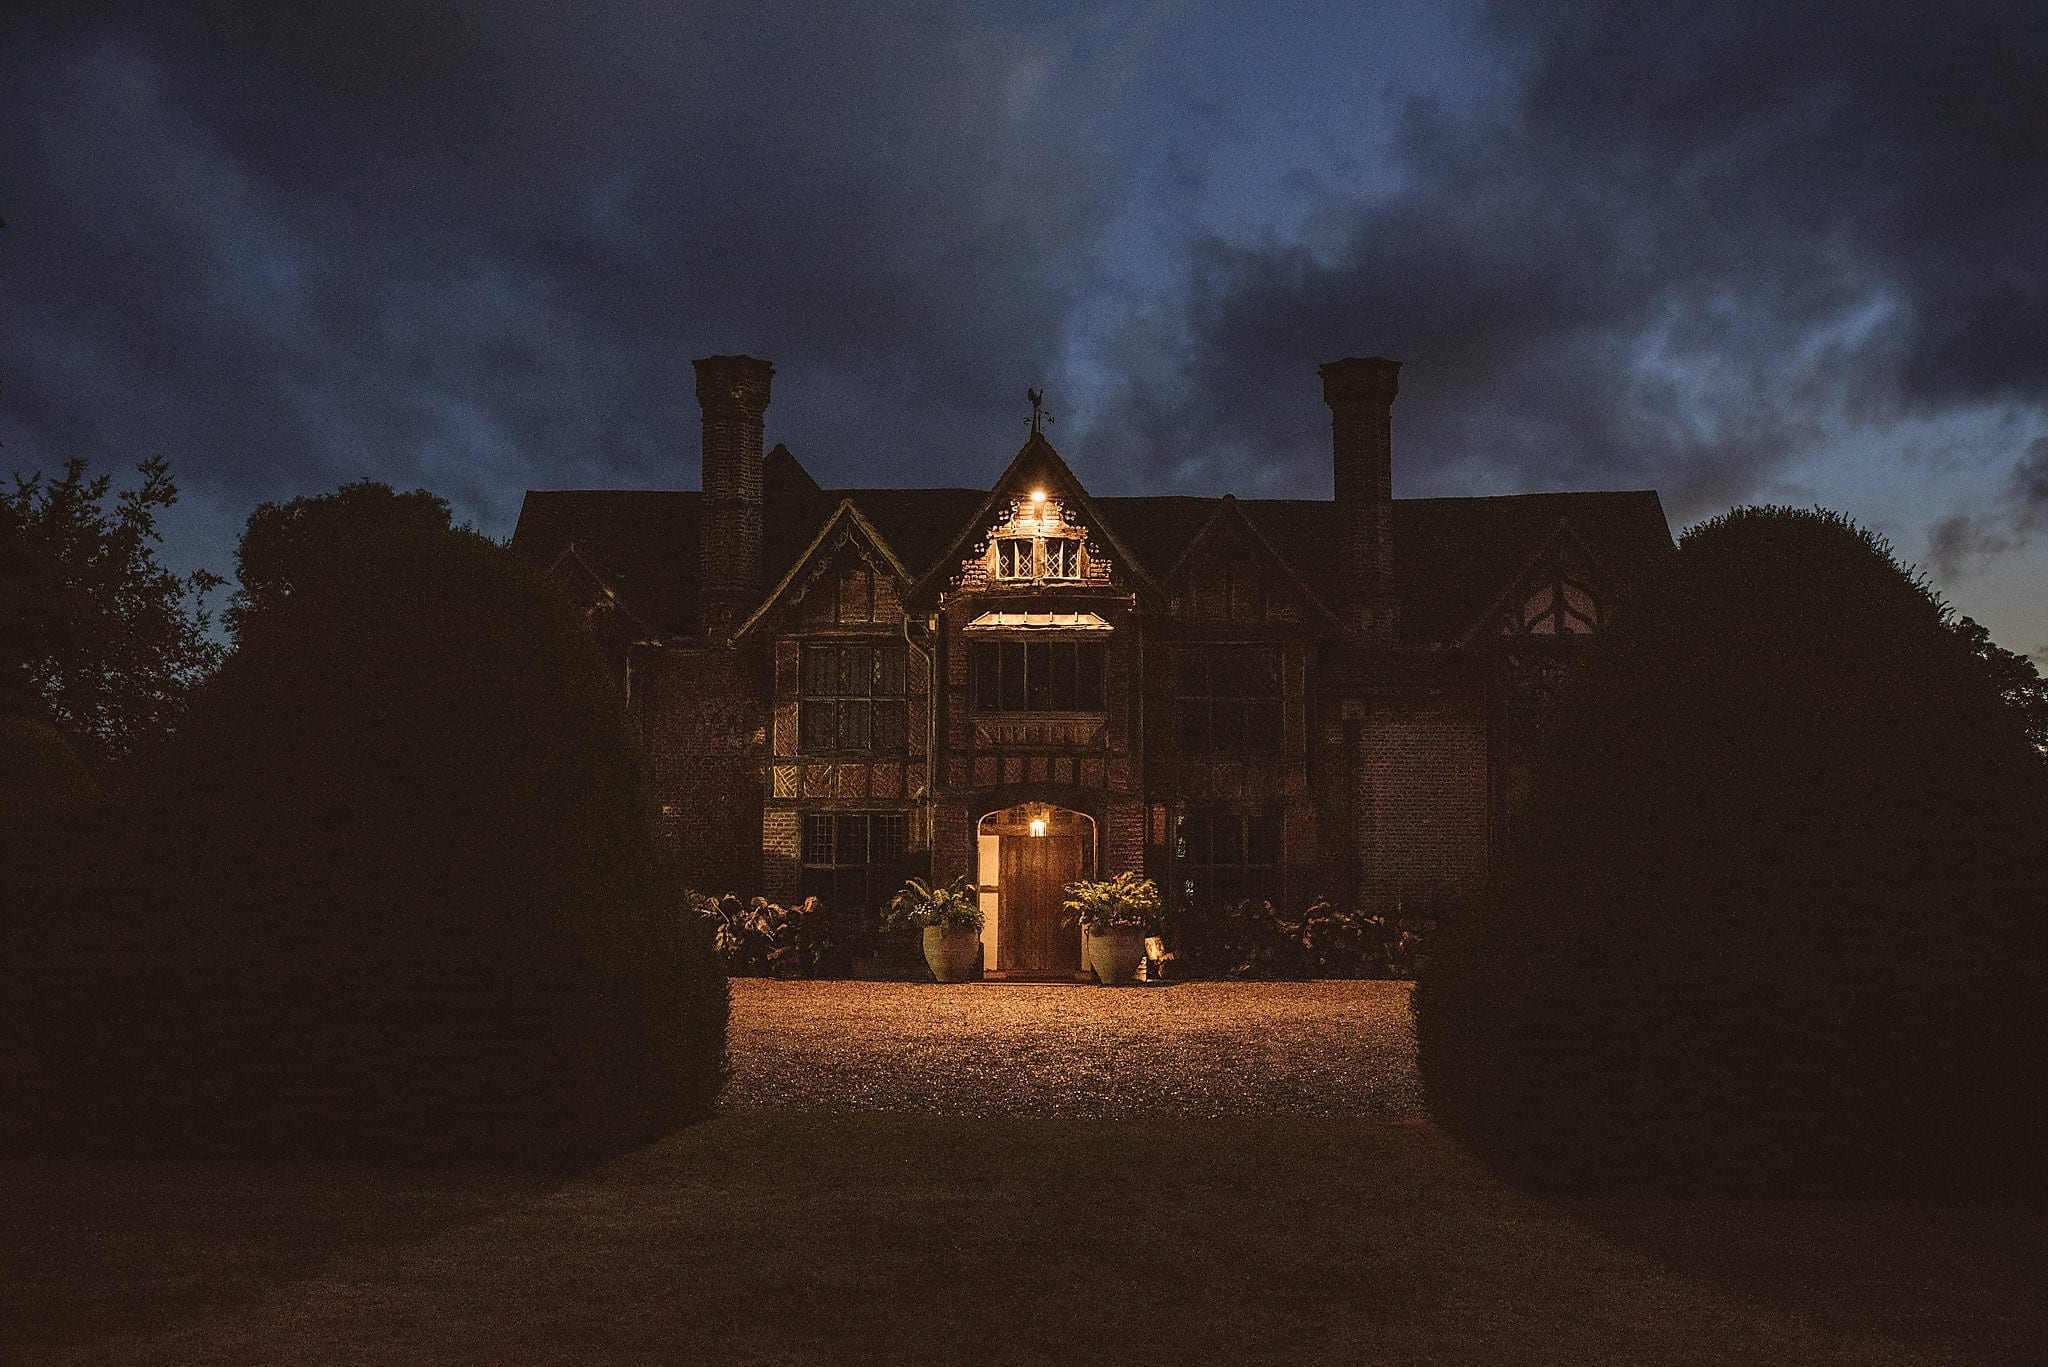 Night time view of Dorney Court Manor House